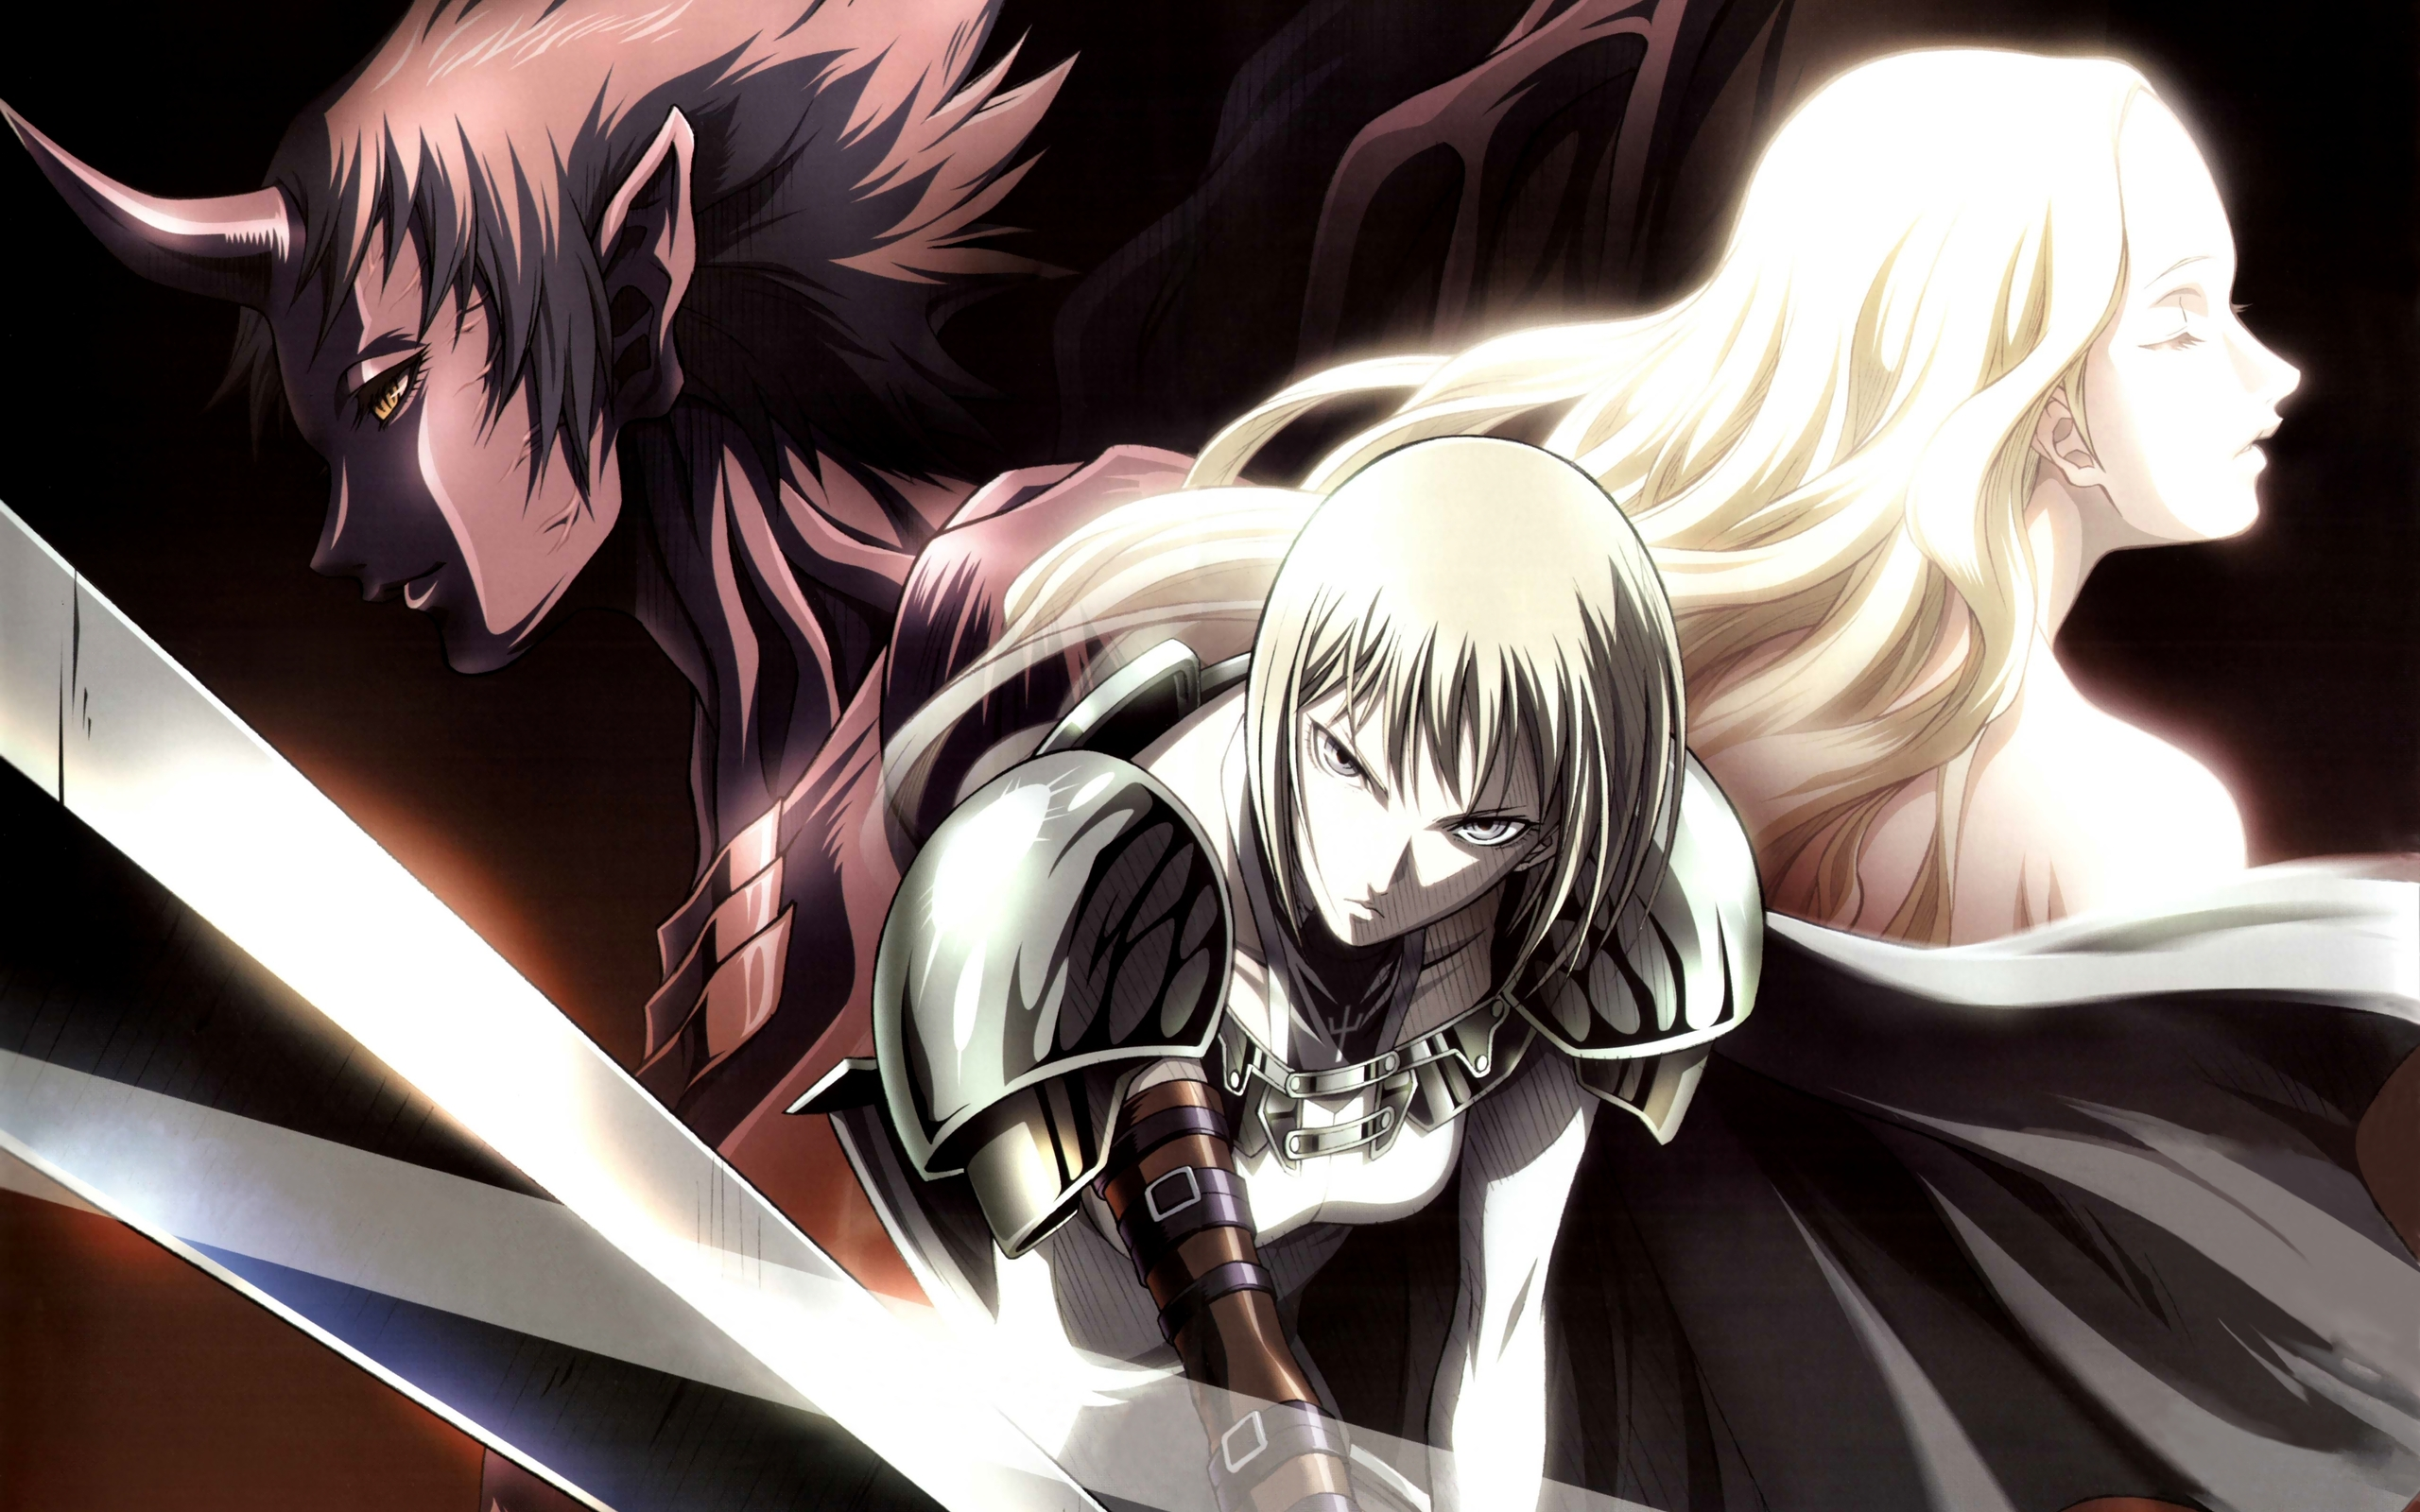 Claymore Full Hd Wallpaper And Background Image -1410